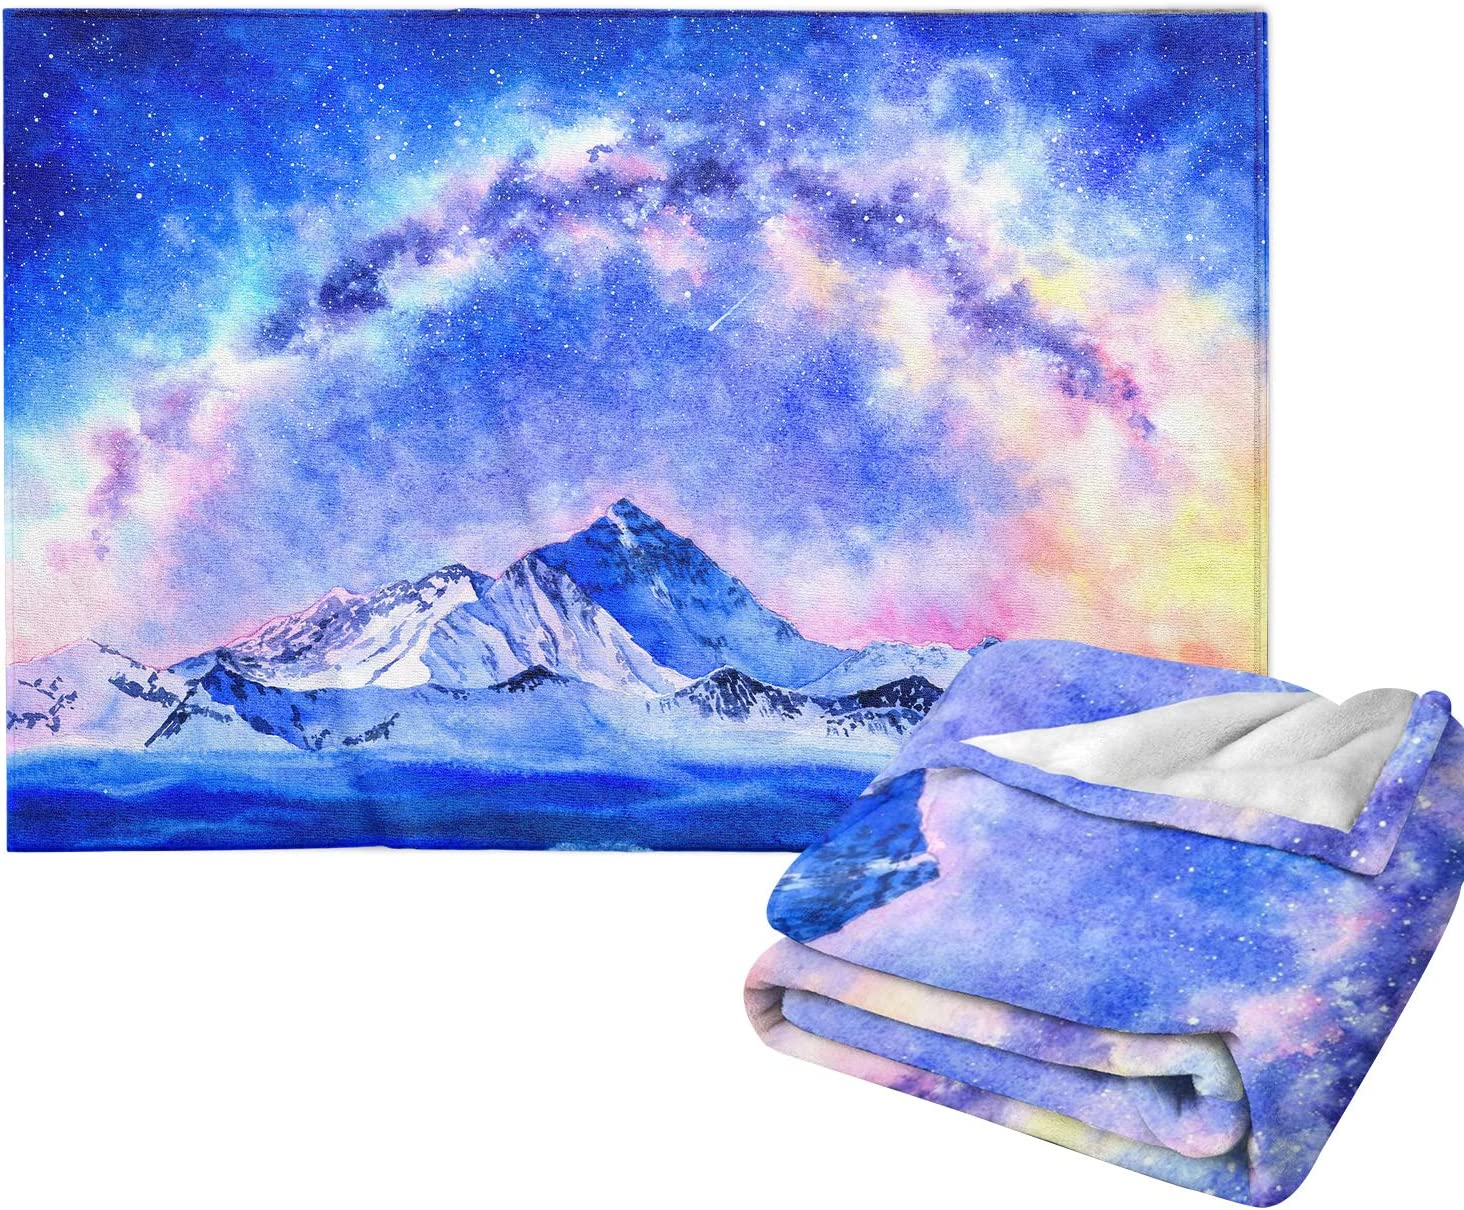 JASMODER Throw Blanket Snow Mountain Opening Bargain sale large release sale and Aurora Soft Microfiber